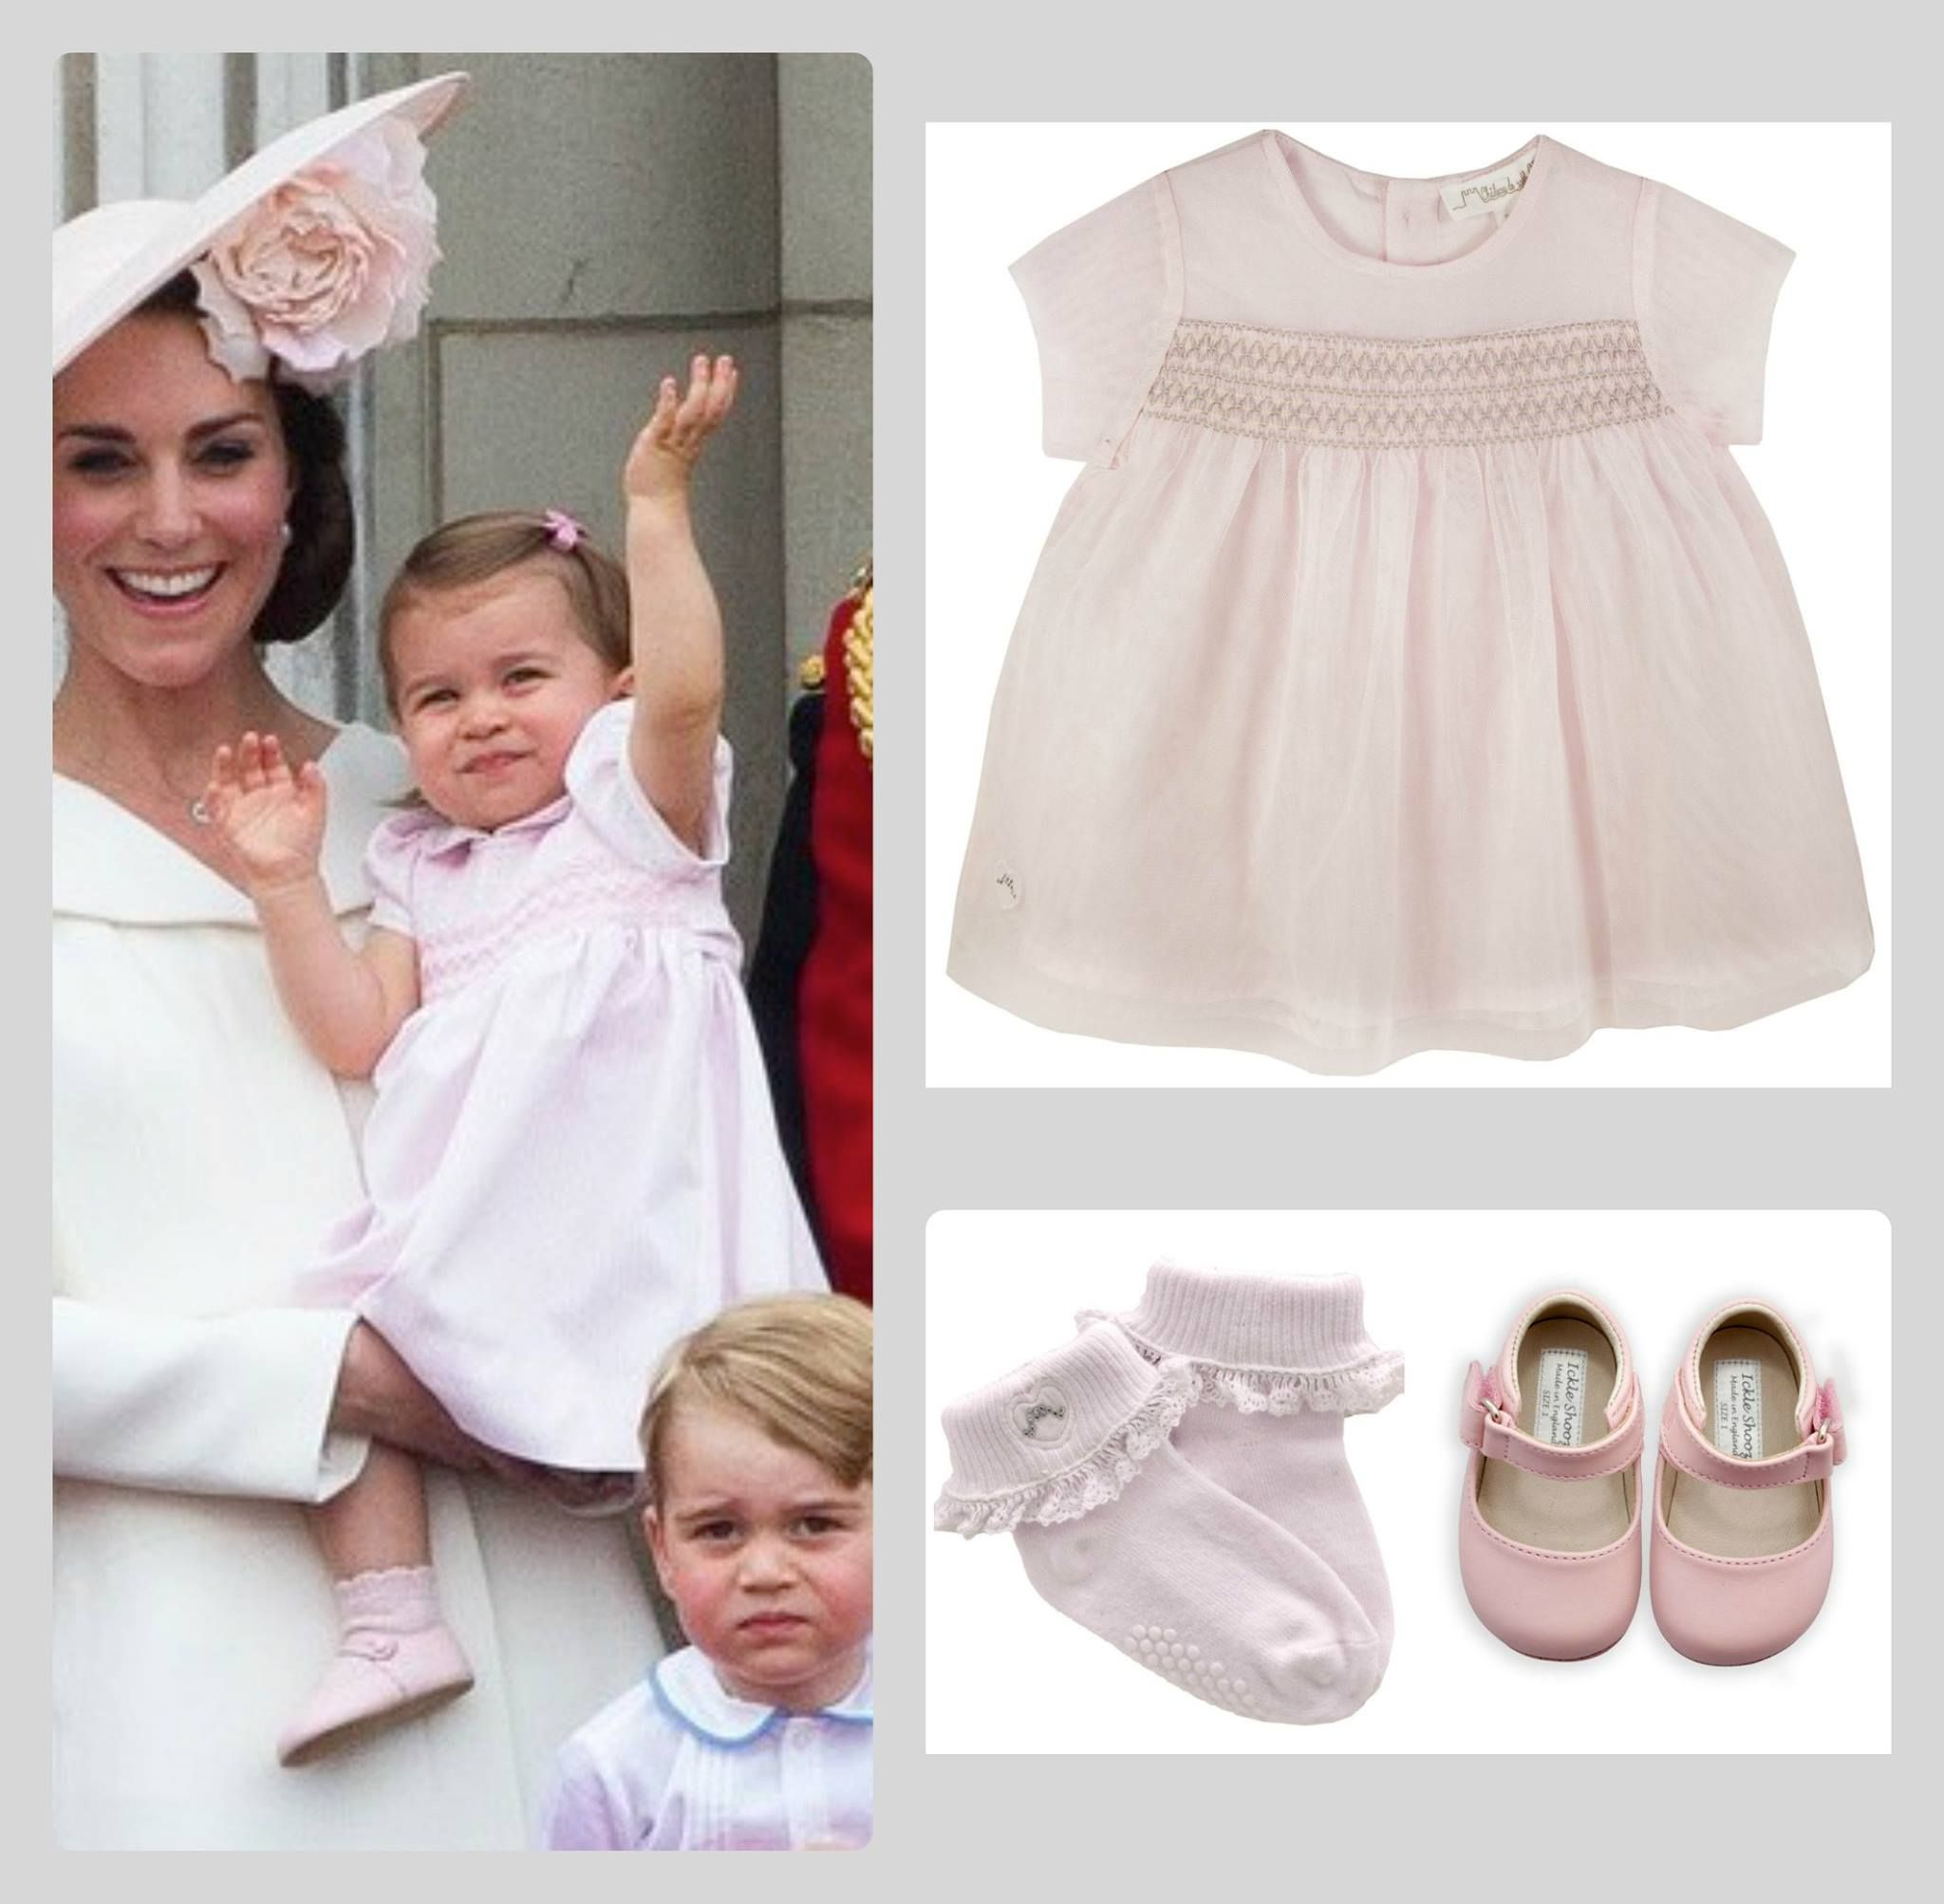 We are loving the styling of Princess Charlotte in her pale pink